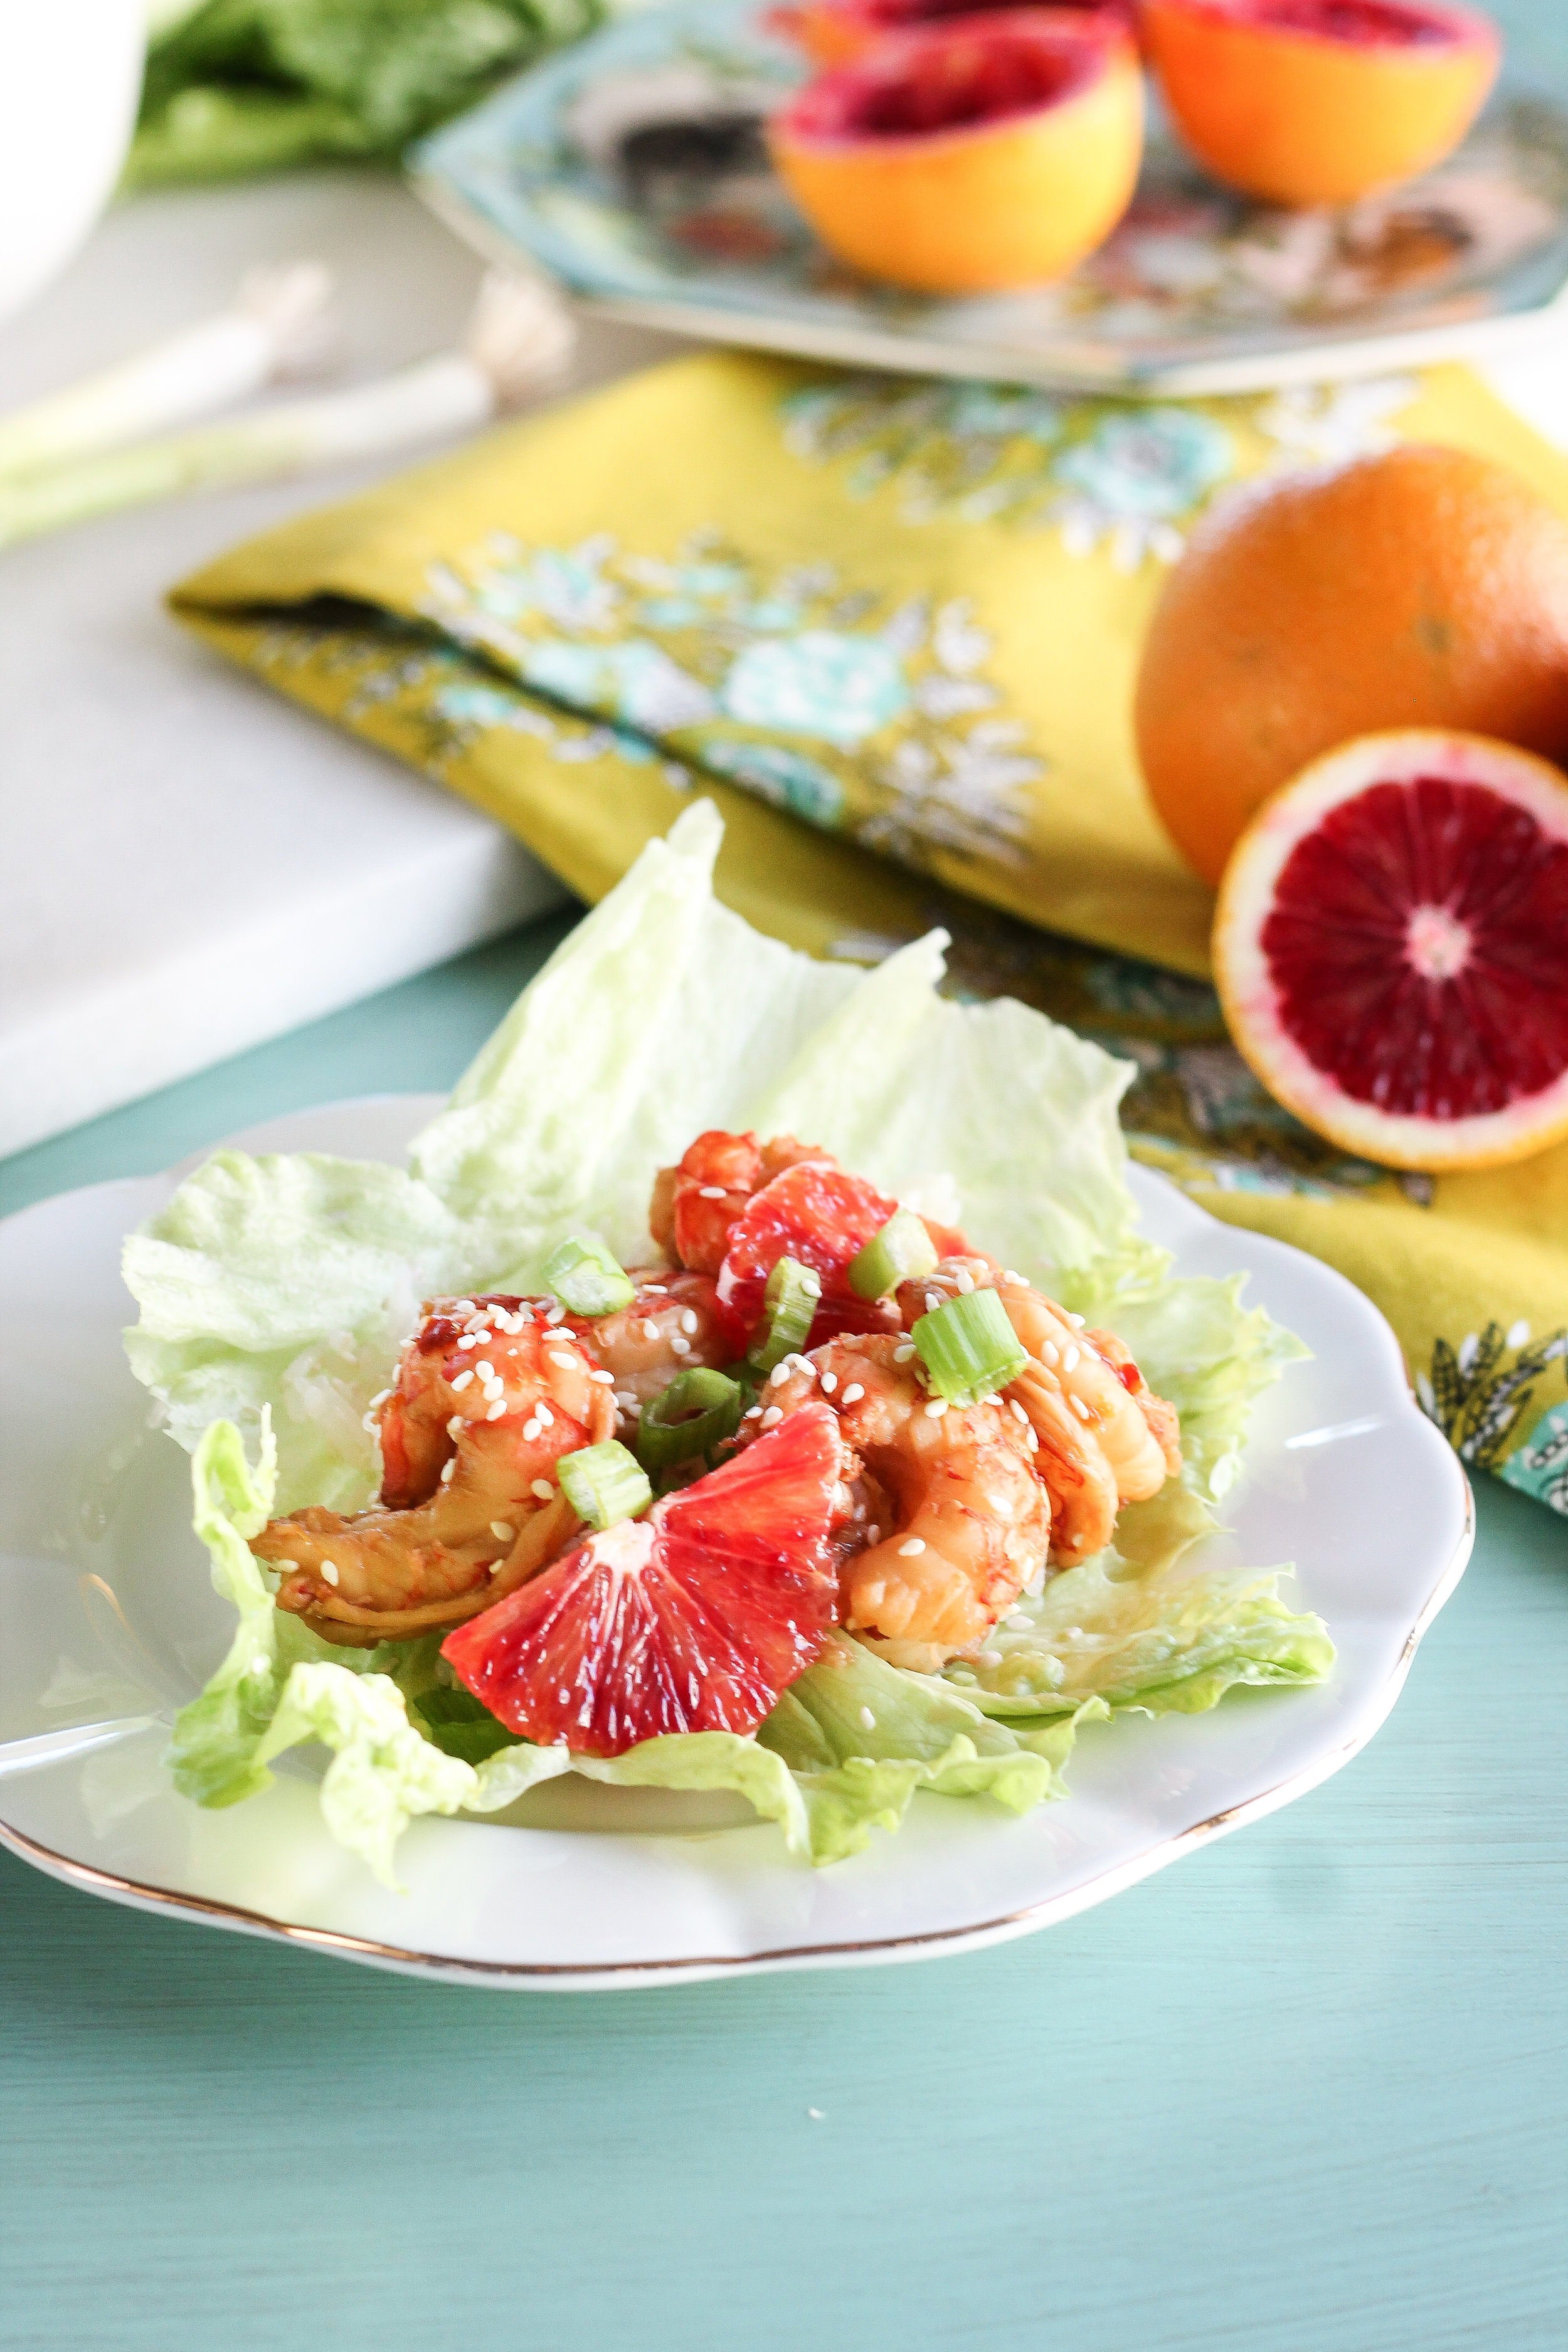 These quick & easy Blood Orange Shrimp & Sesame Marinated Shrimp Lettuce wraps make the perfect, healthy weeknight meal!  Find the recipe at www.pedanticfoodie.com!